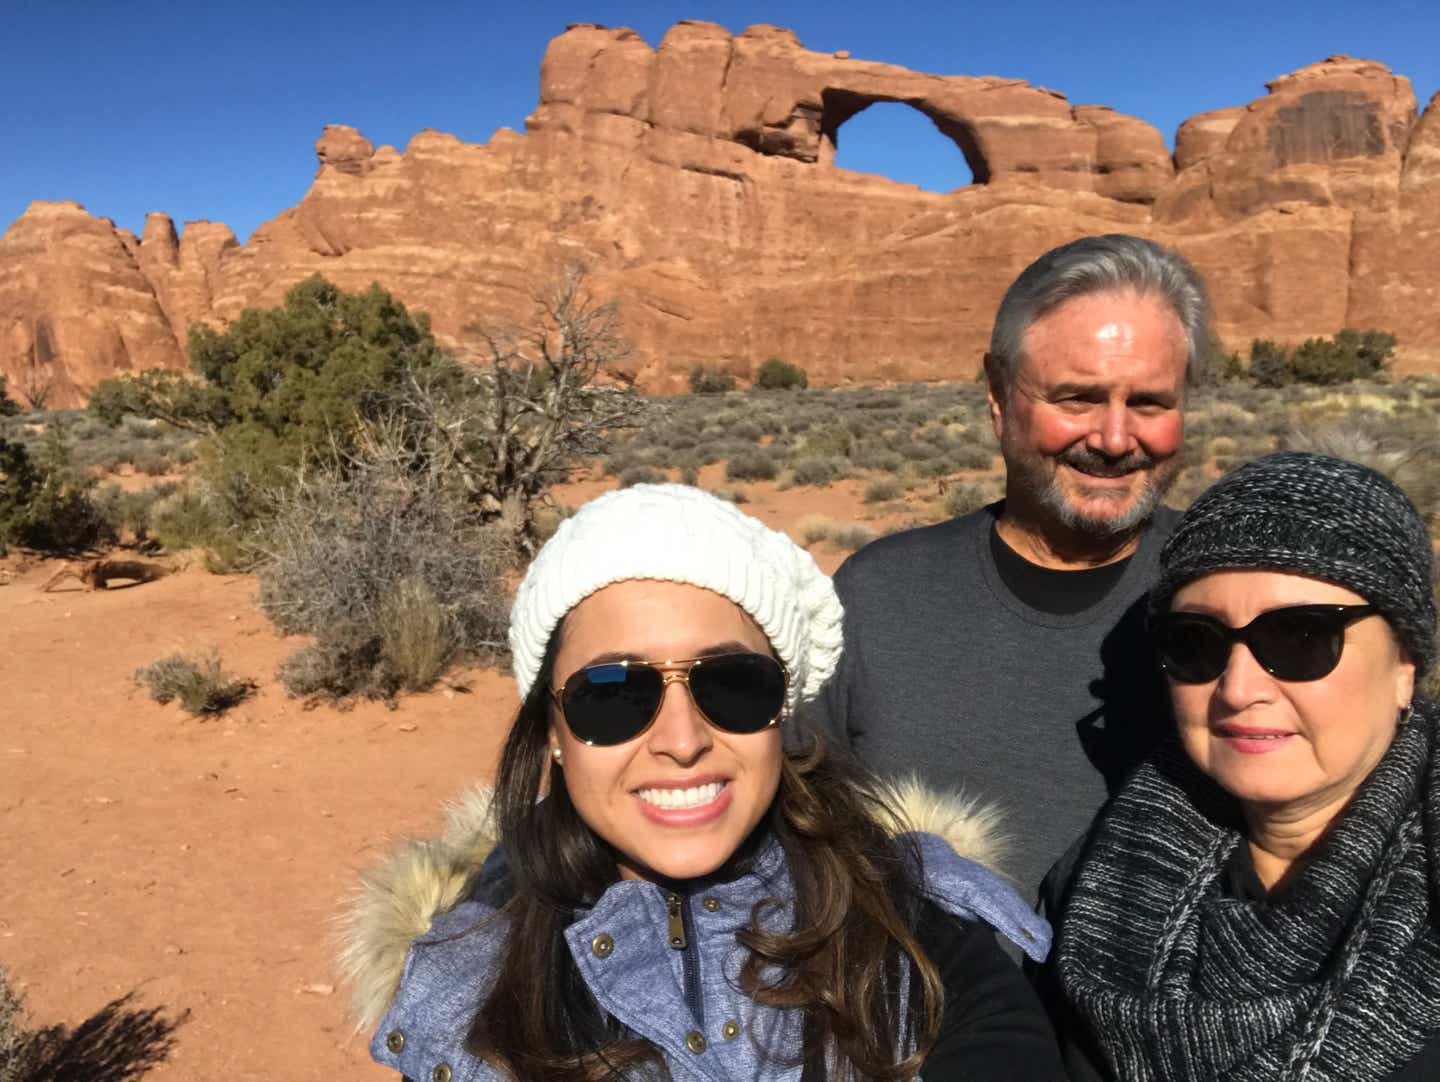 Andrea and her family at Arches National Park in Utah